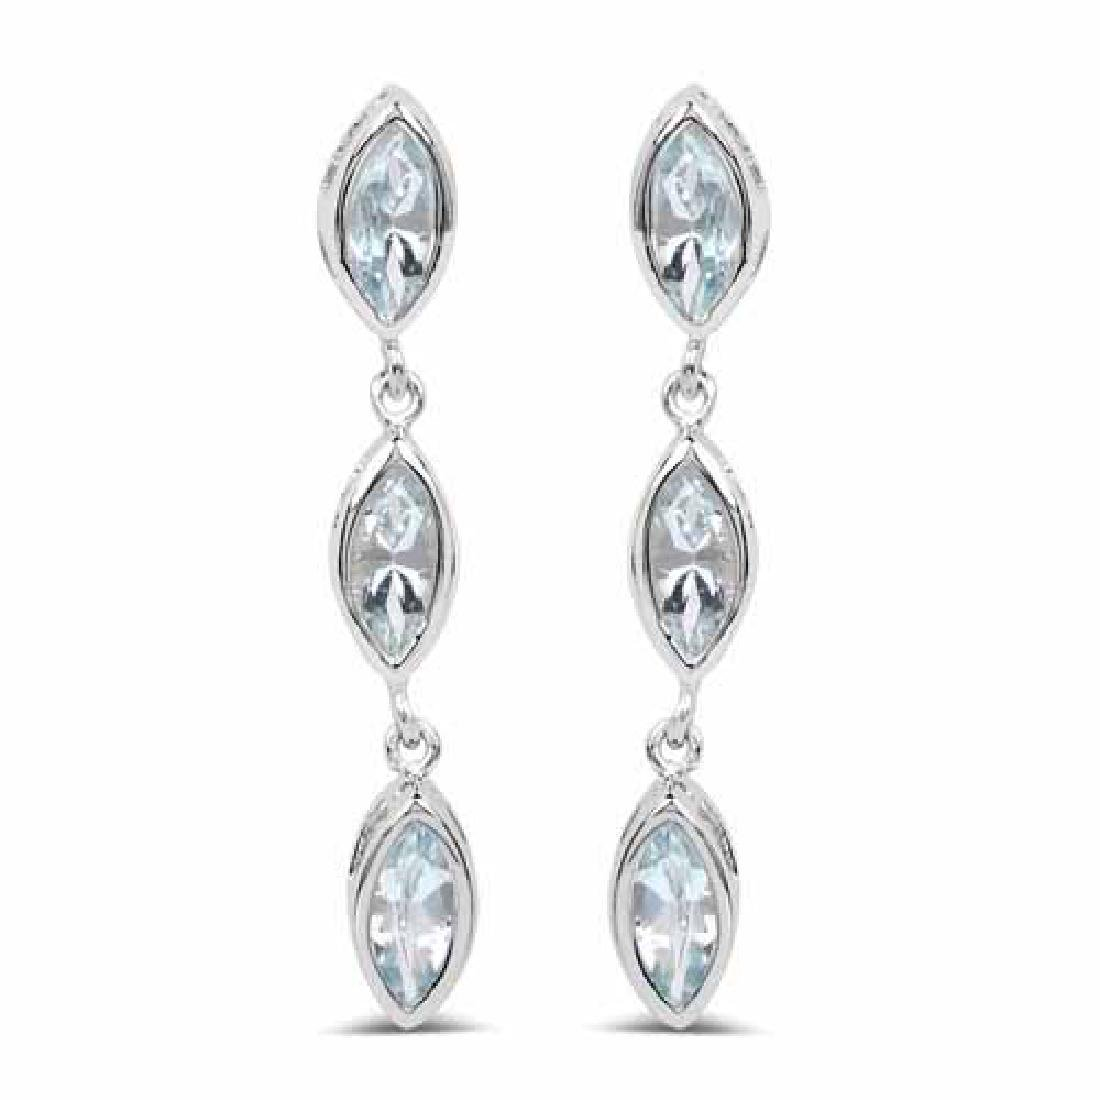 1.92 Carat Genuine Aquamarine .925 Sterling Silver Earr